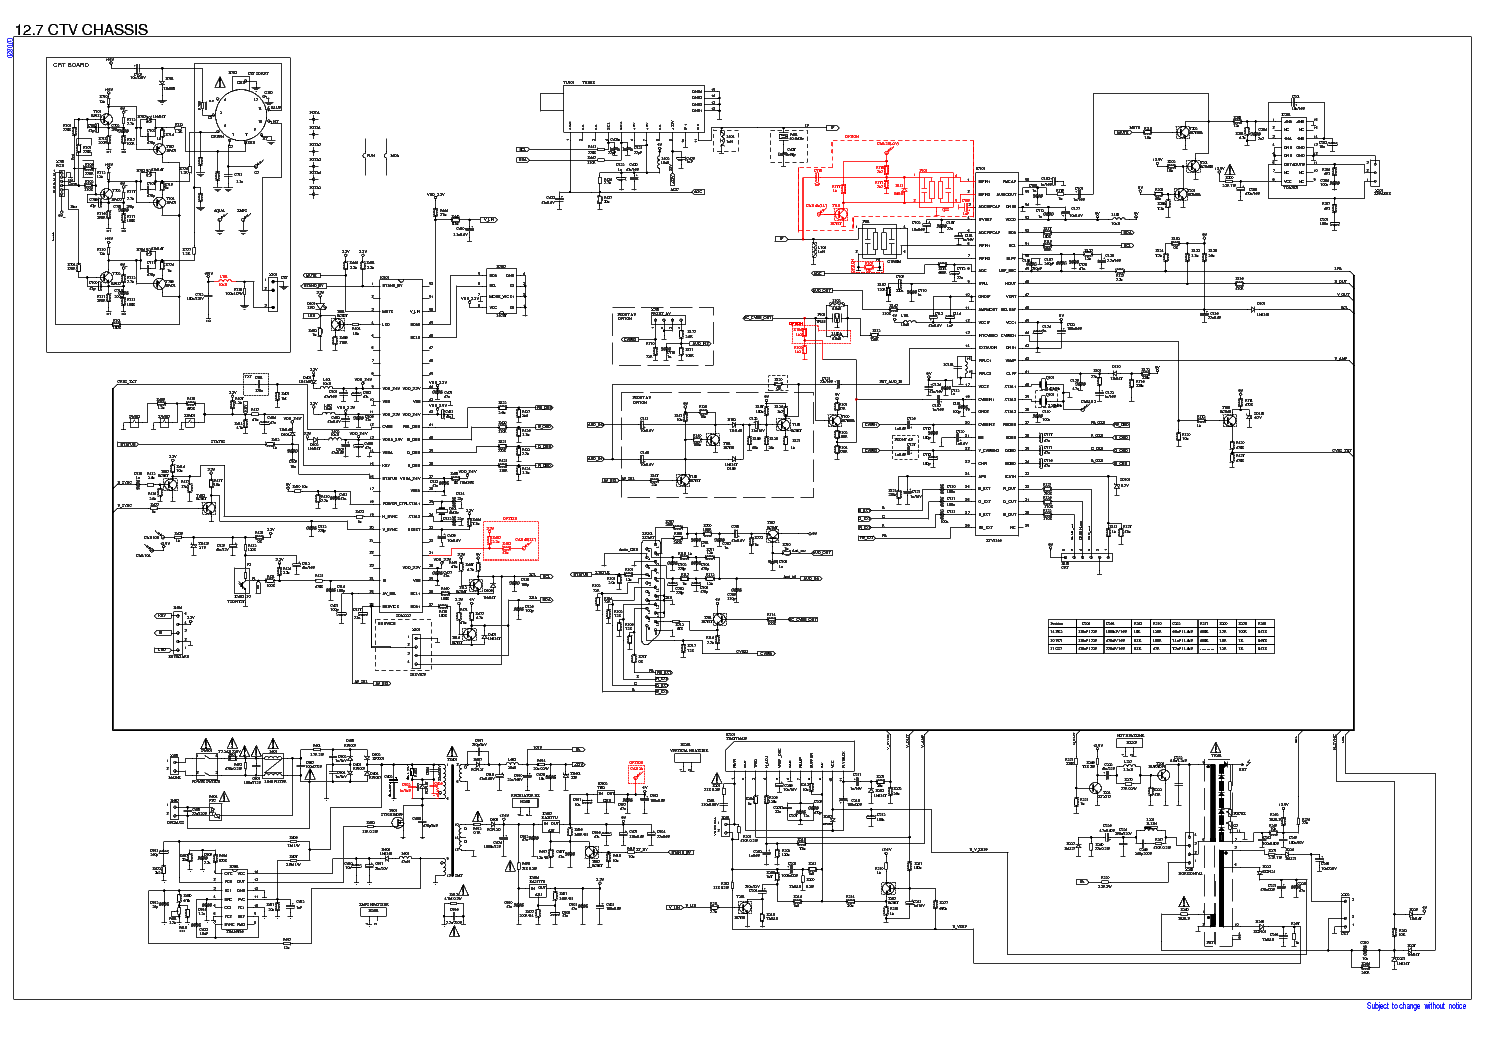 hight resolution of beko tel chassis 12 7 circuit diagram service manual free download circuitdiagram service manual free download tv circuits free